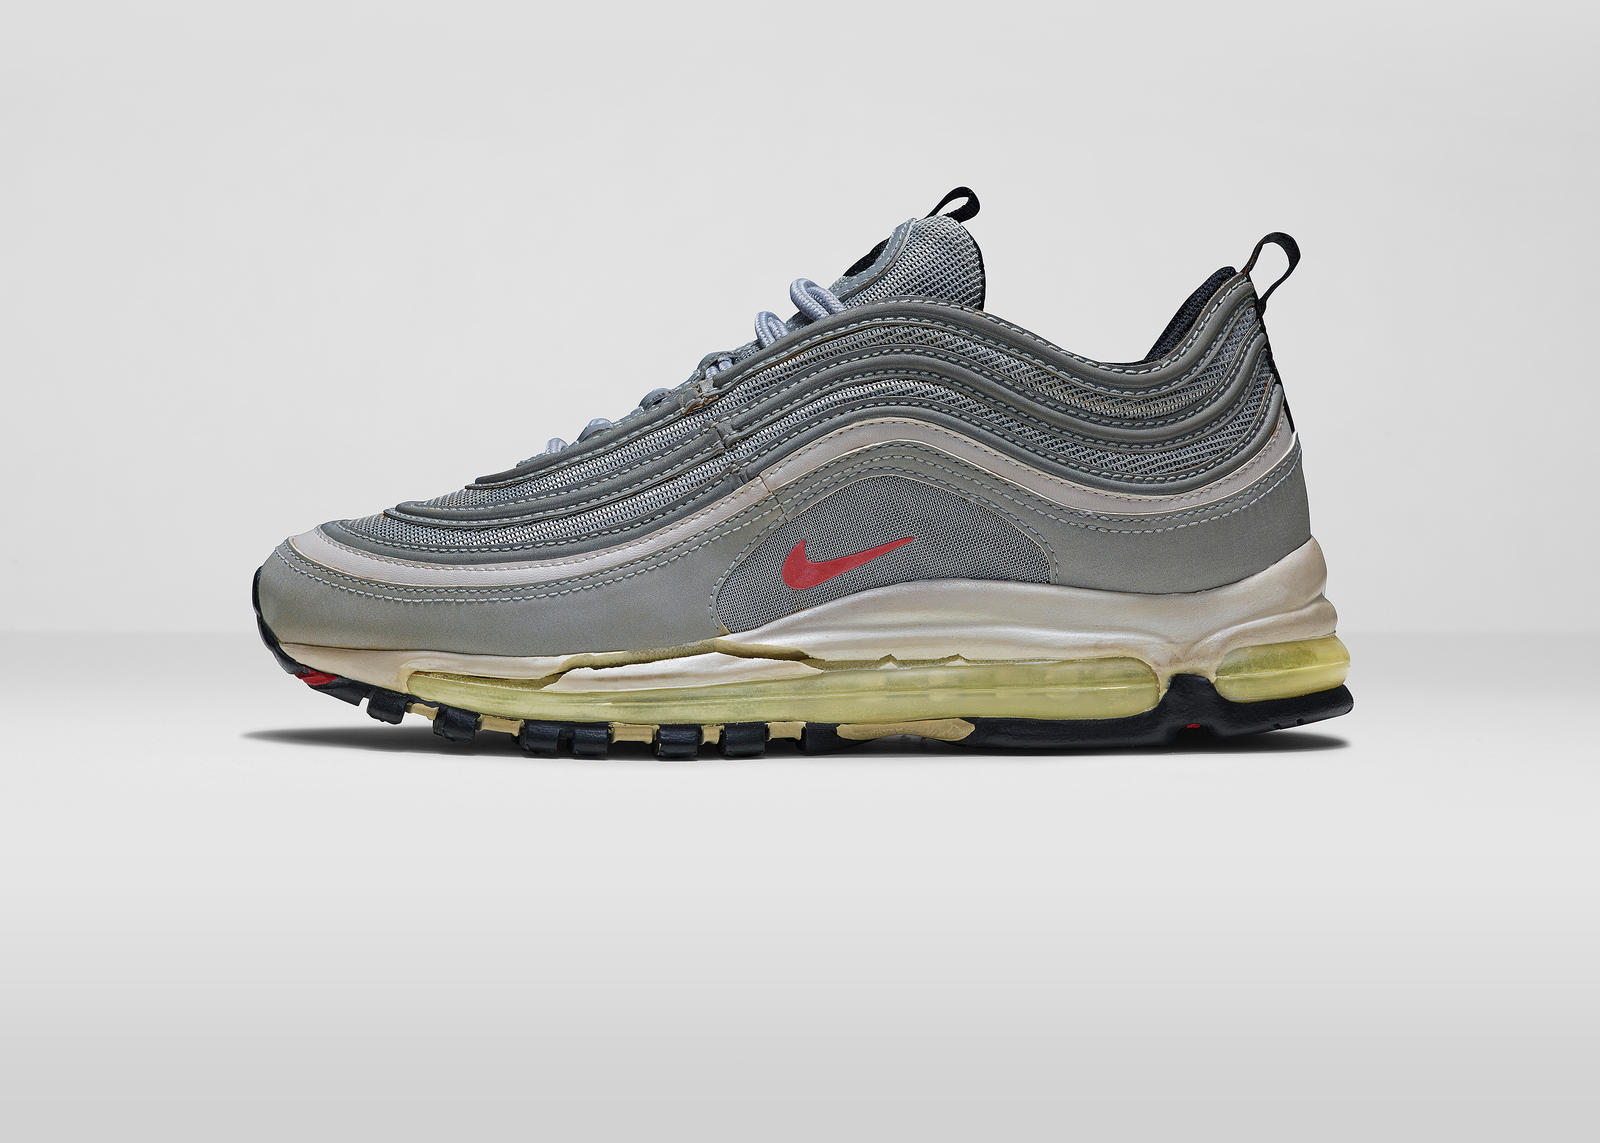 An original Nike Air Max 97